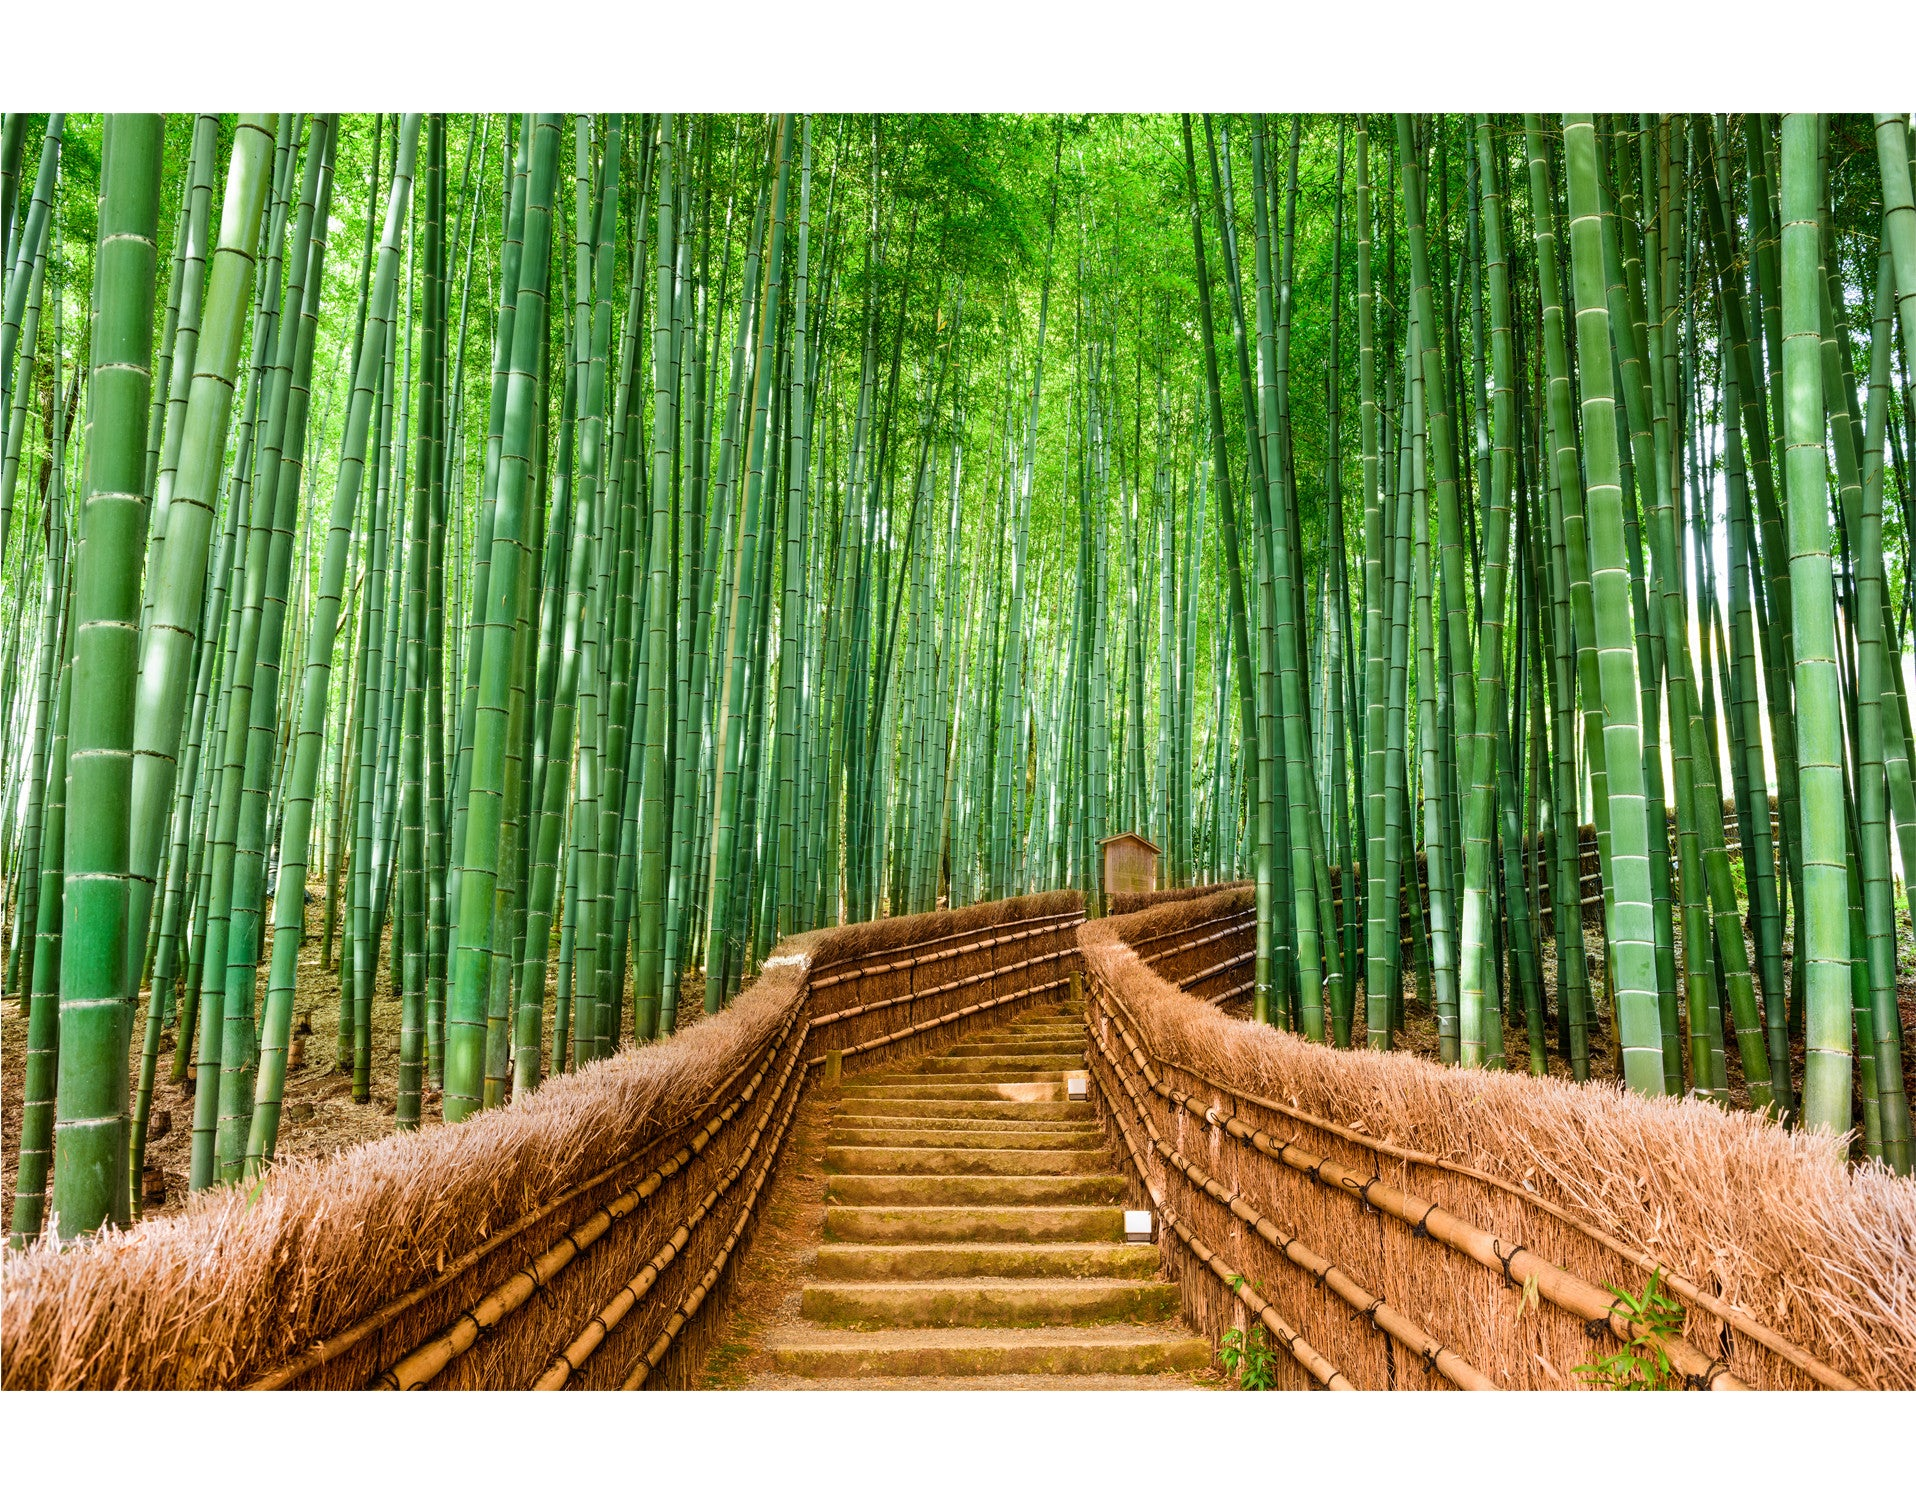 Bamboo Forest Mural Of Bamboo Forest Wall Mural 6043